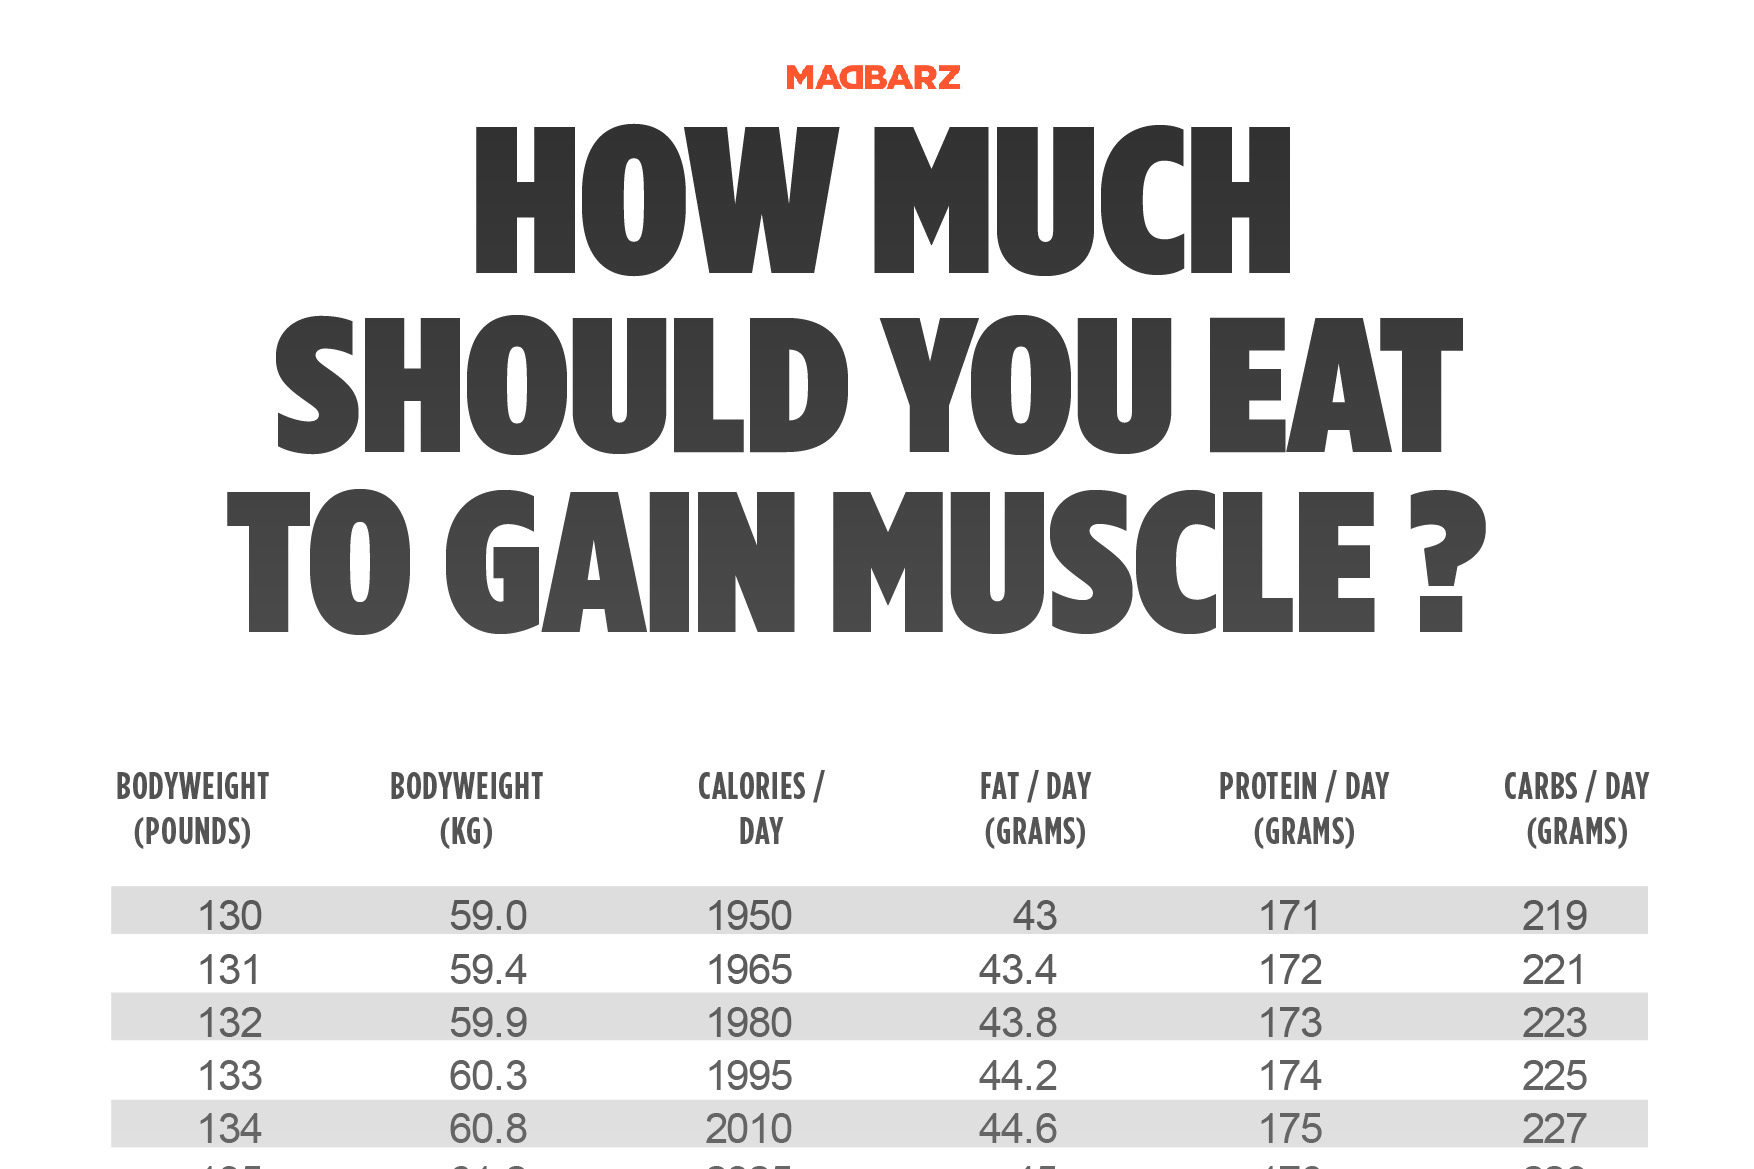 How much calories to gain muscle per bodyweight